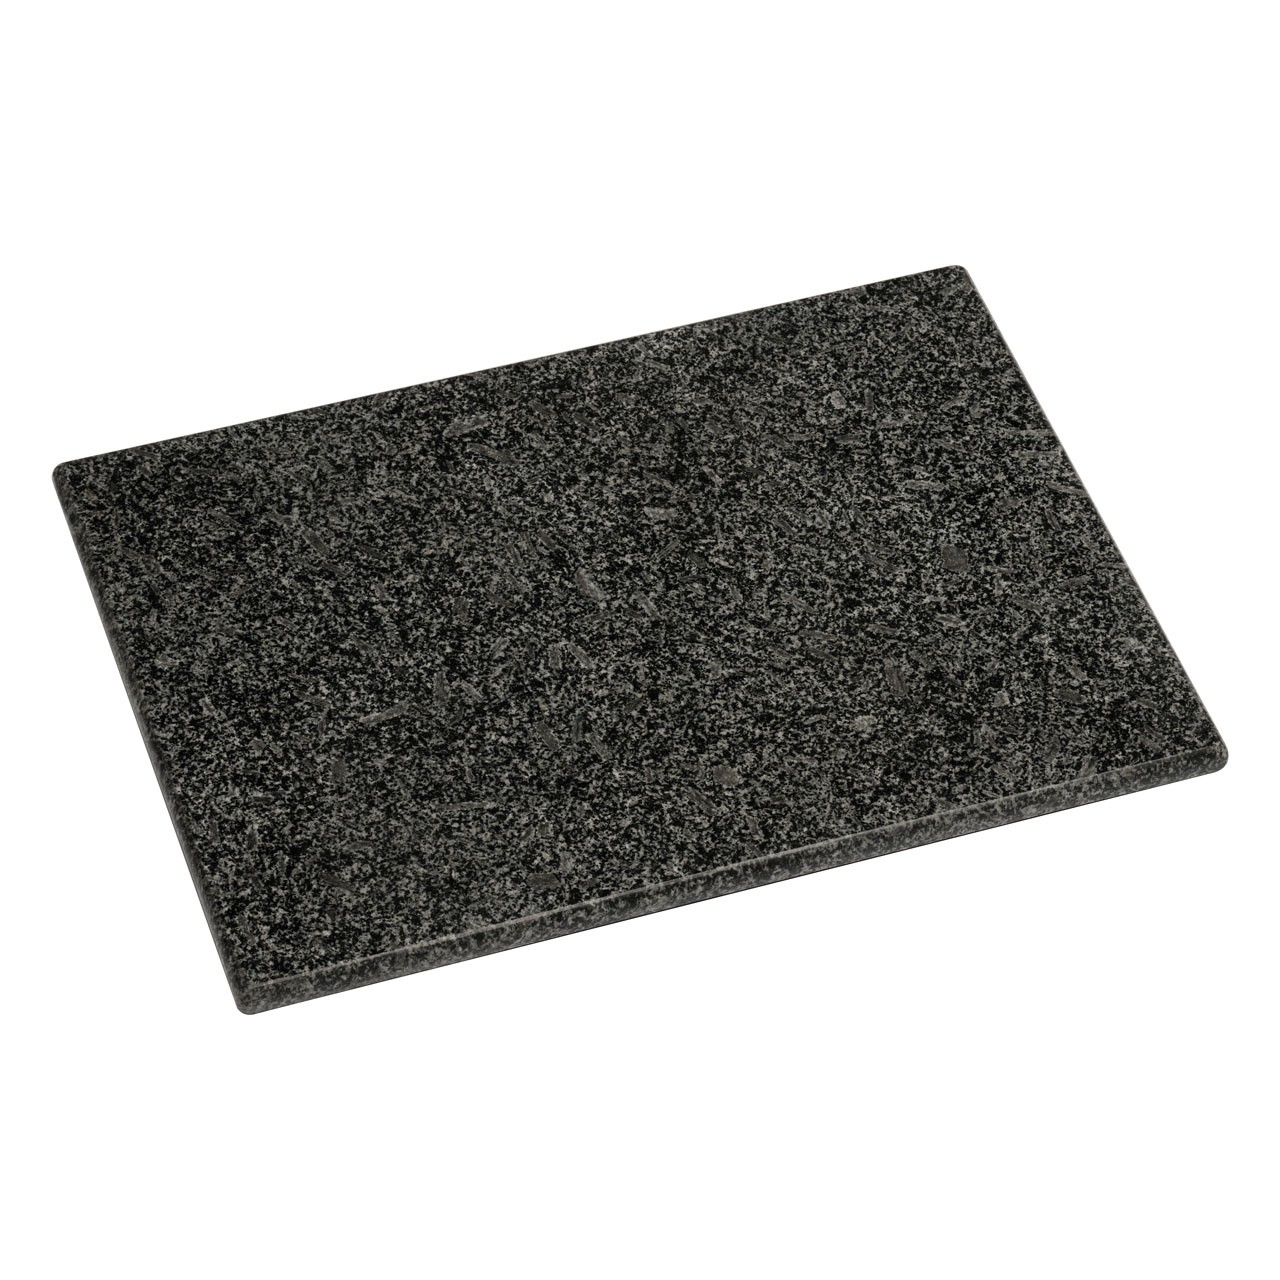 Speckled Granite Chopping Board , Black